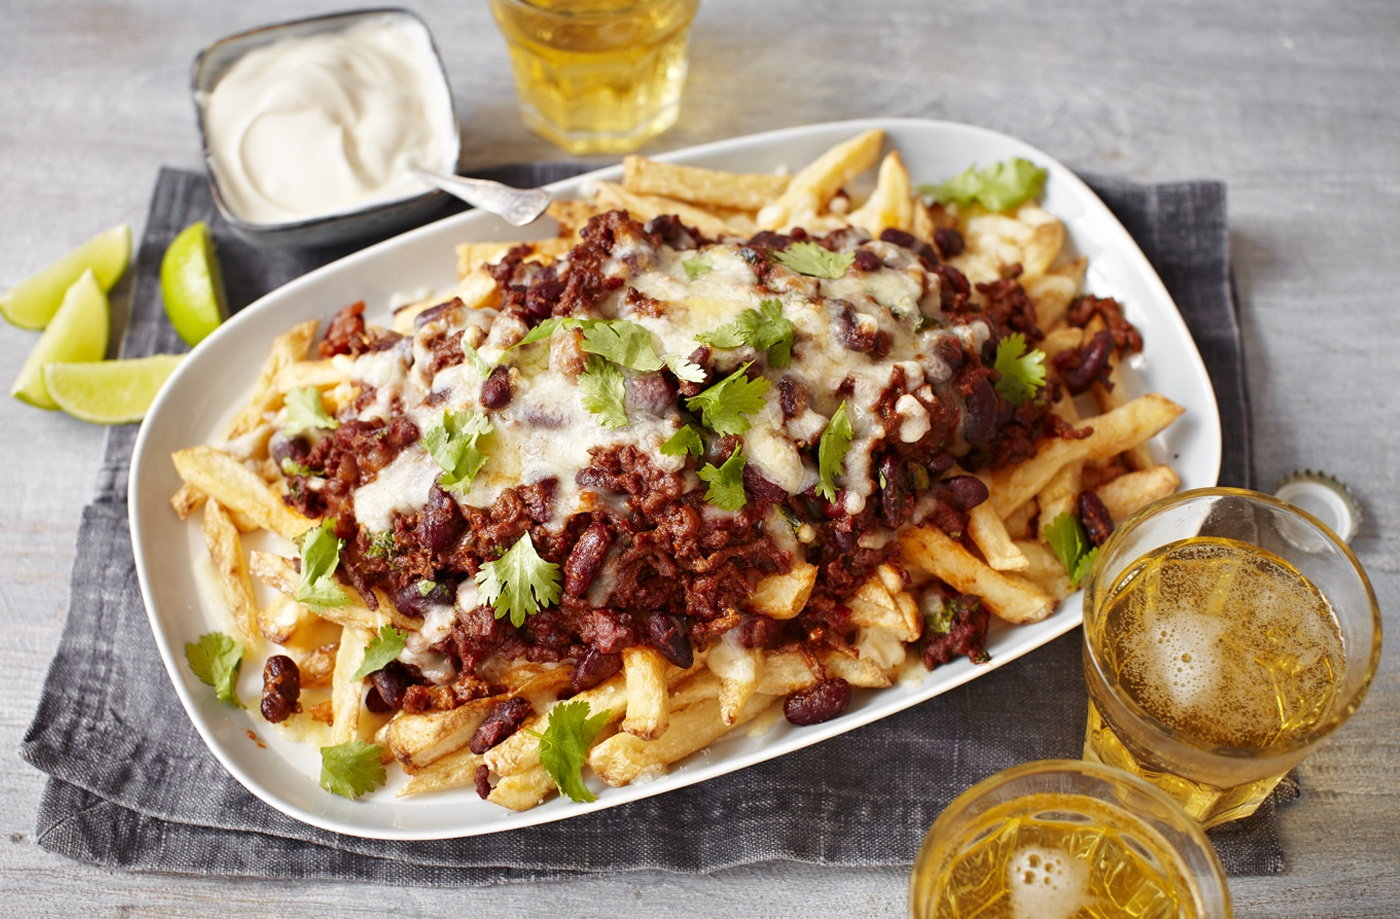 Chilli Cheese Fries